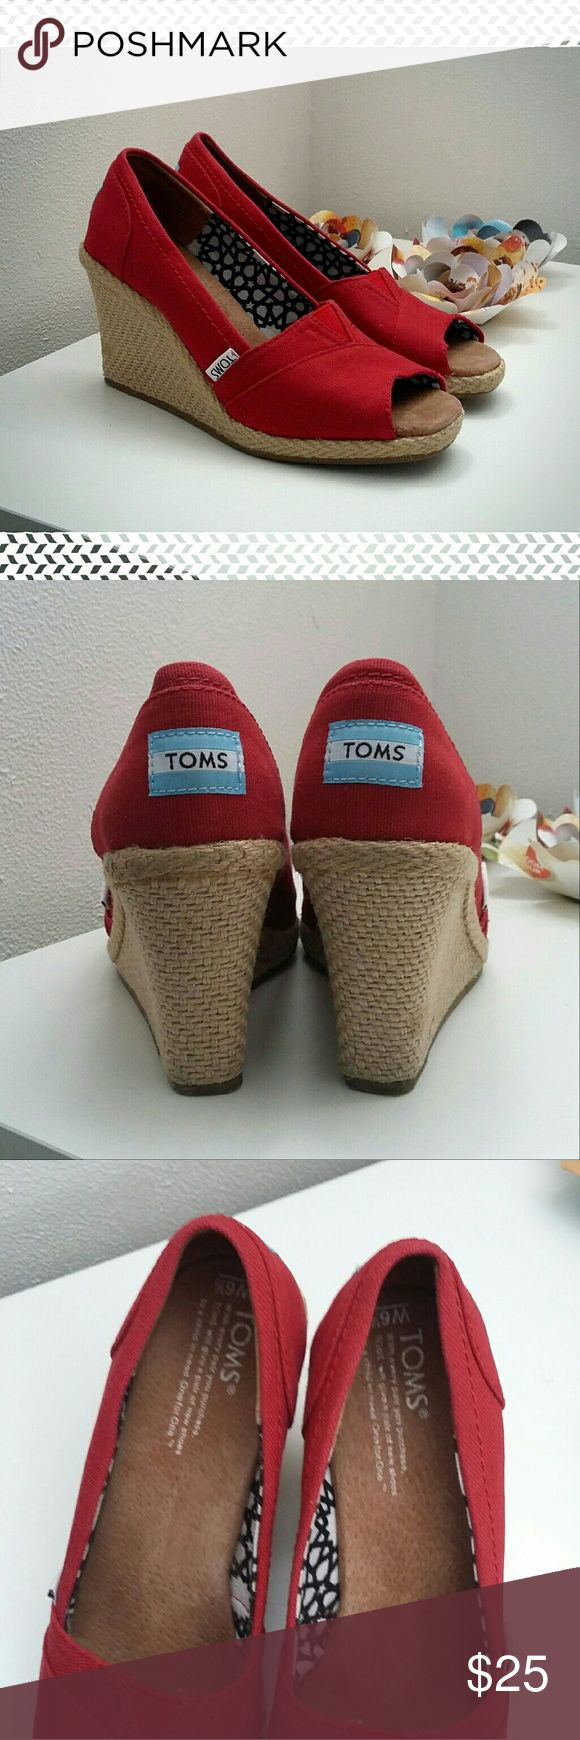 Tom's Red Canvas Espadrille Wedges Cute Tom's summer wedges!  Gently worn, see pic for slight discoloration in right heel. TOMS Shoes Espadrilles